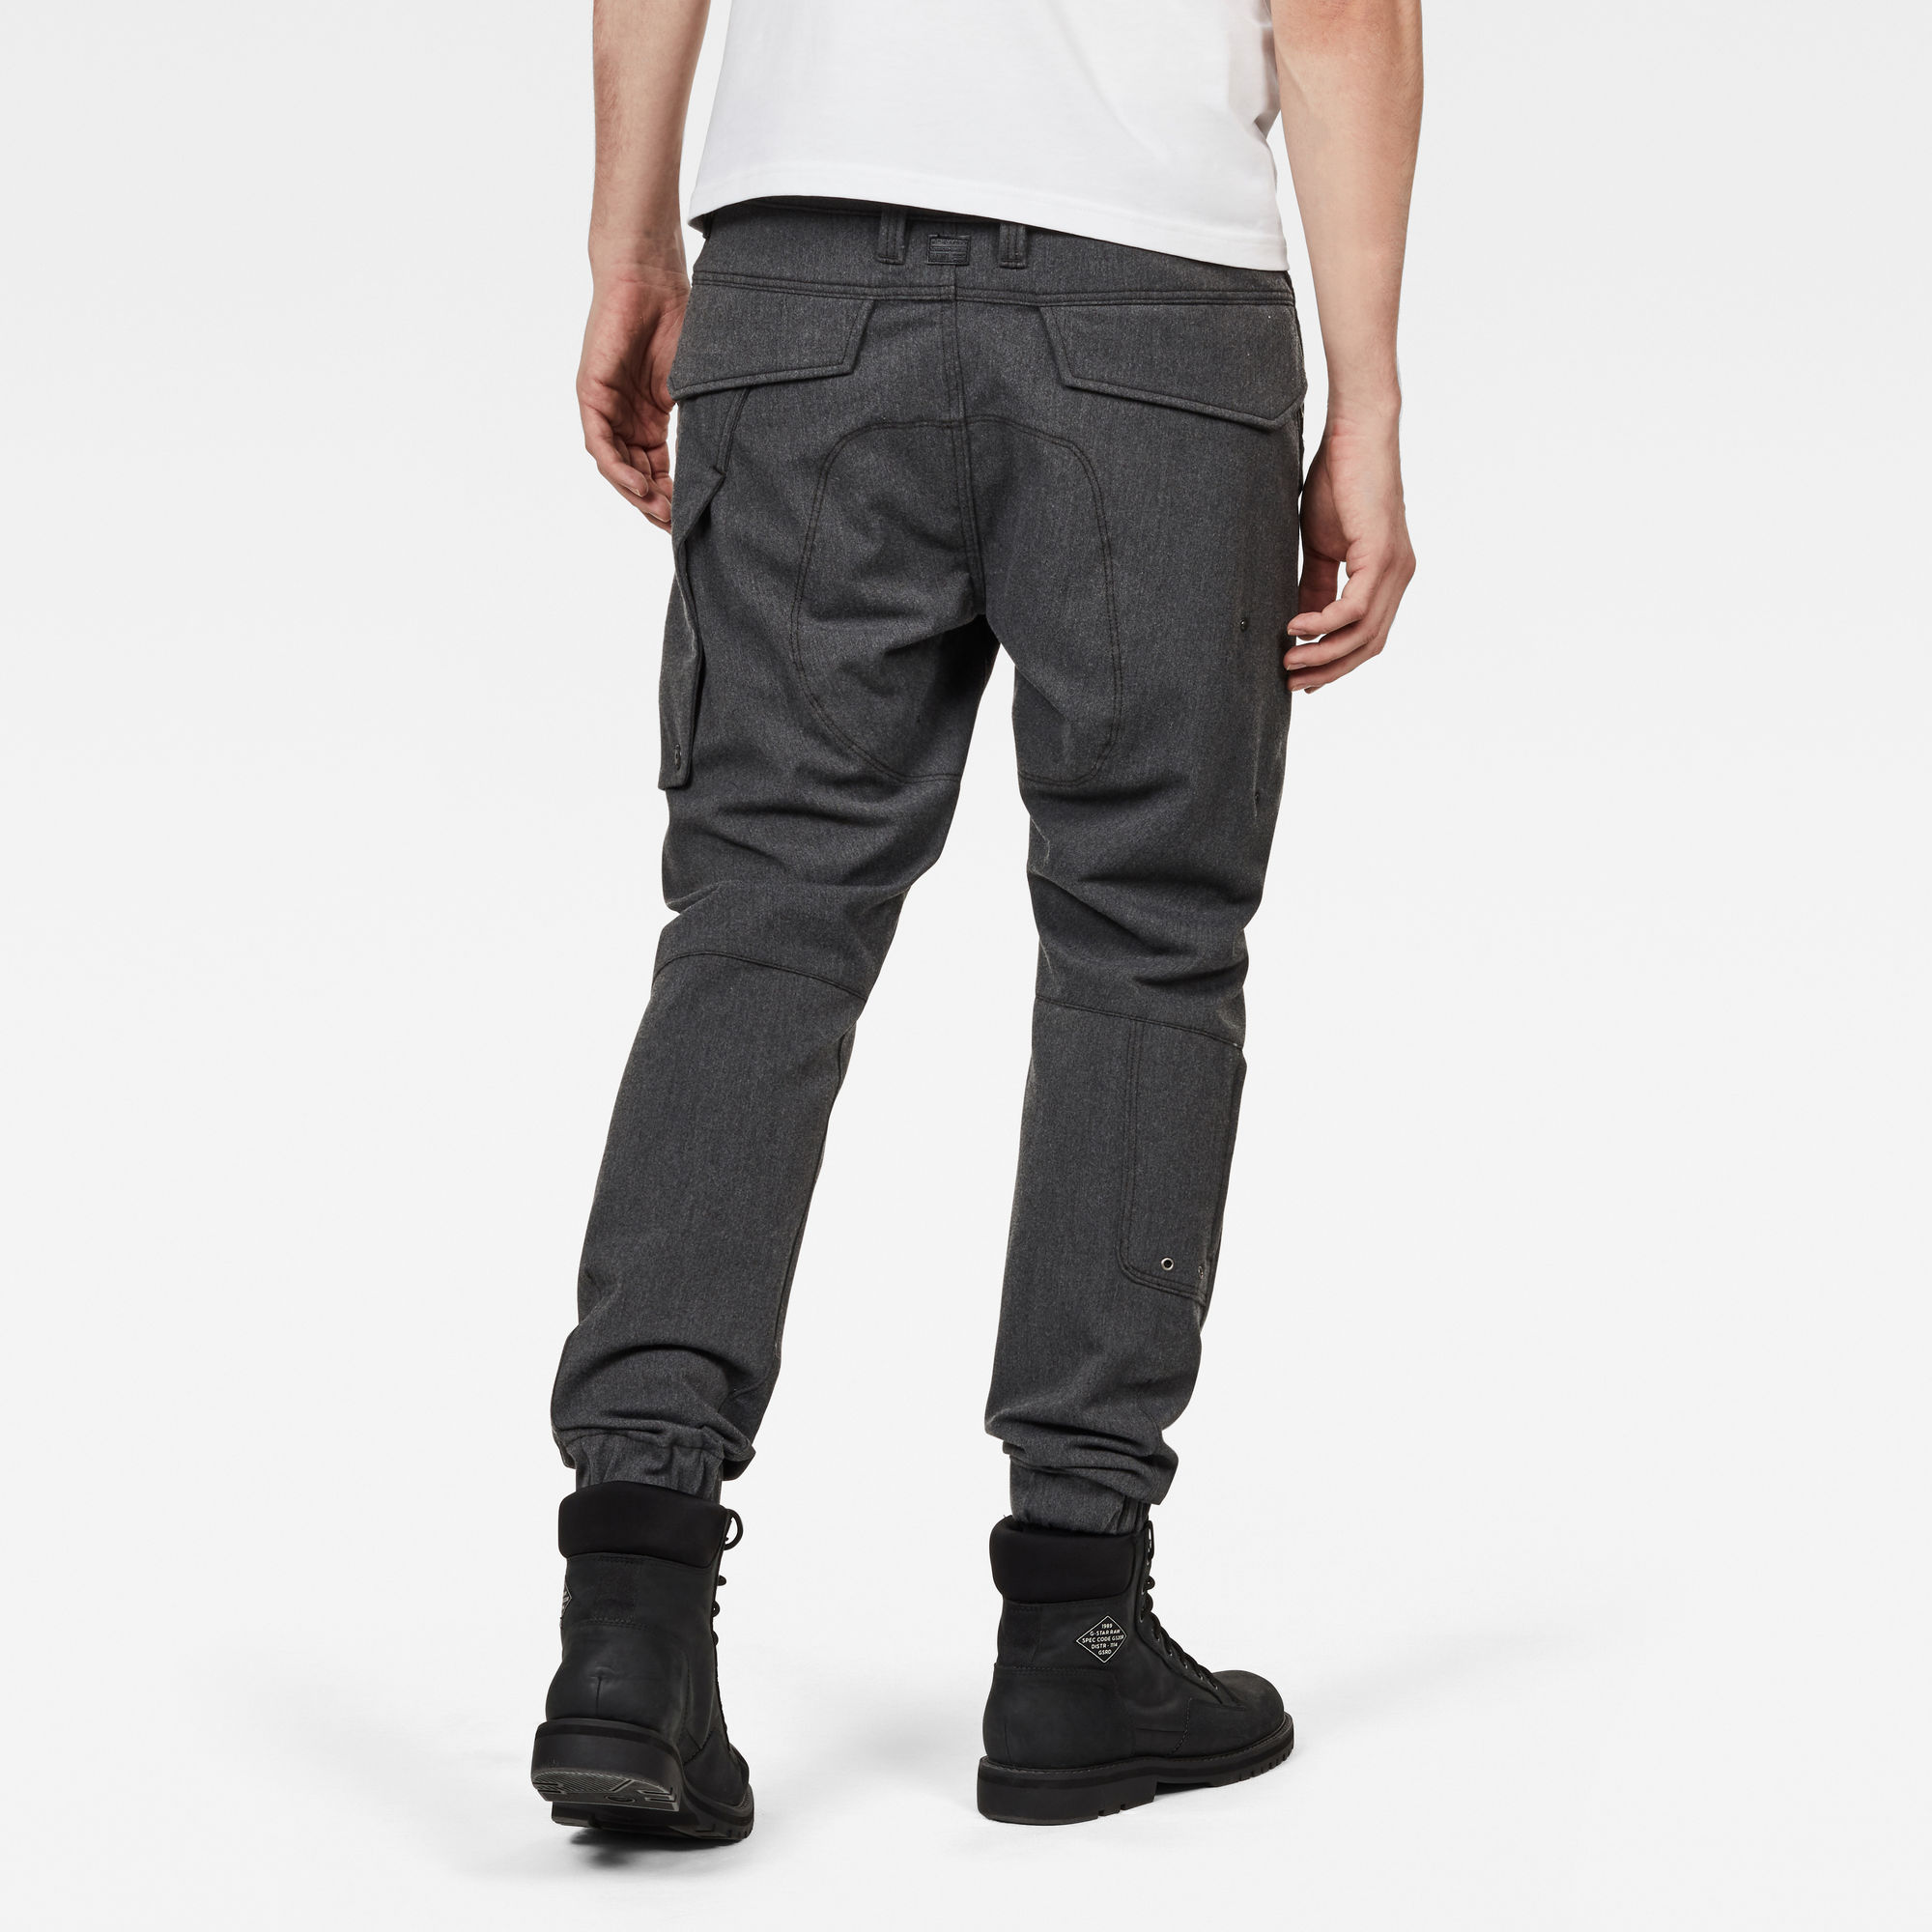 Citishield 3D Cargo Slim Tapered Cuffed Broek